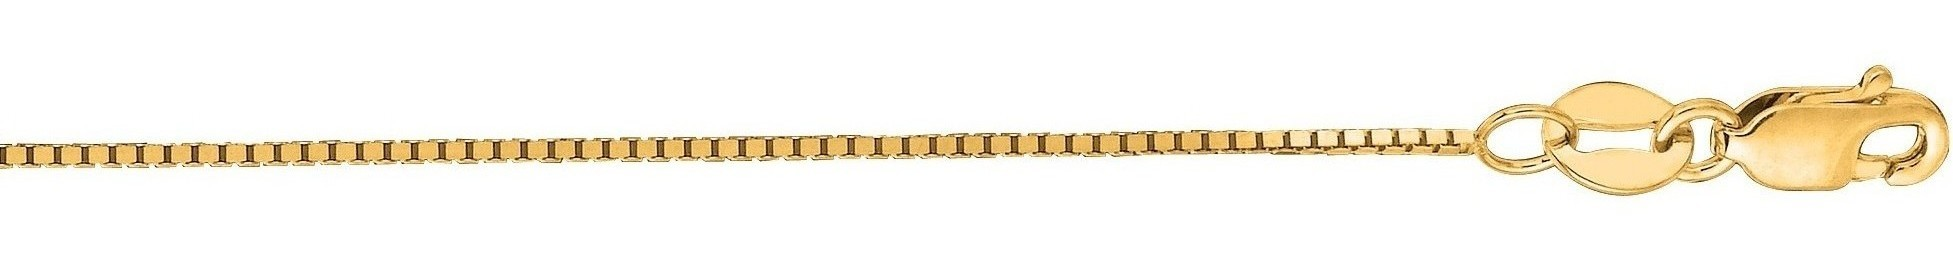 "20"" 14K Yellow Gold 0.7mm (0.03"") Polished Classic Box Chain w/ Lobster Clasp"